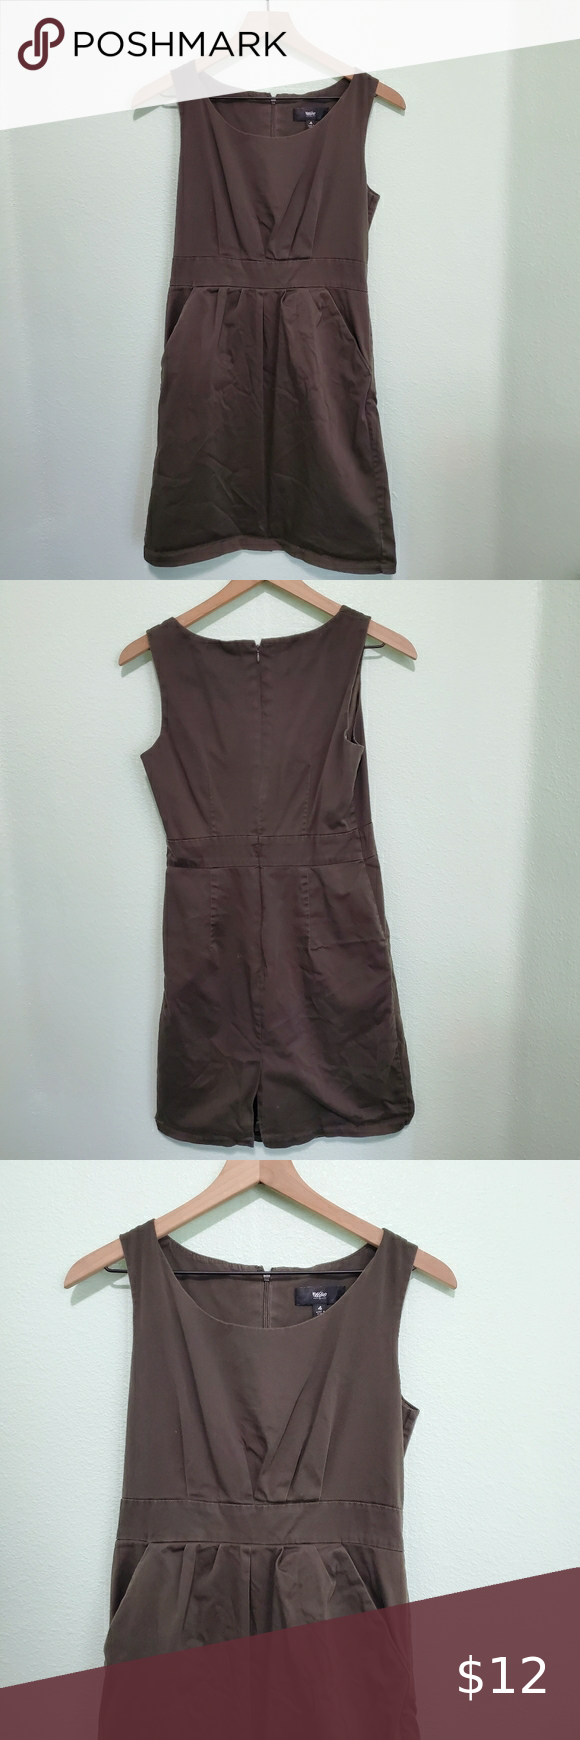 Mossimo Army Green Dress Great Condition Army Or Olive Green Dress From Mossimo Target Fitted Shape With D Army Green Dress Green Dress Olive Green Dresses [ 1740 x 580 Pixel ]